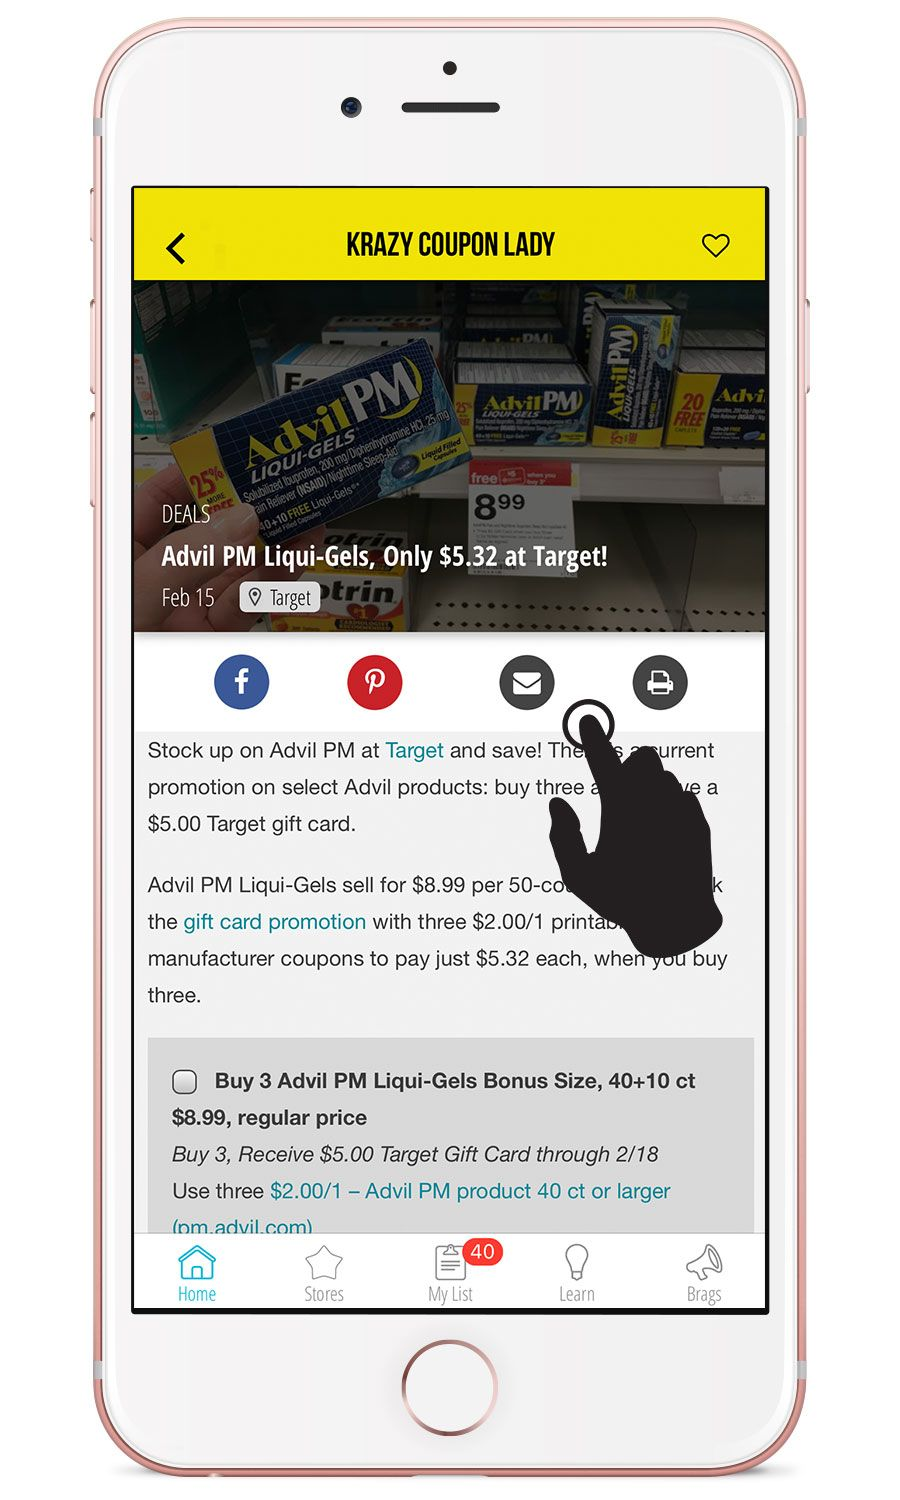 Getting Started With the Krazy Coupon Lady Mobile iOS App